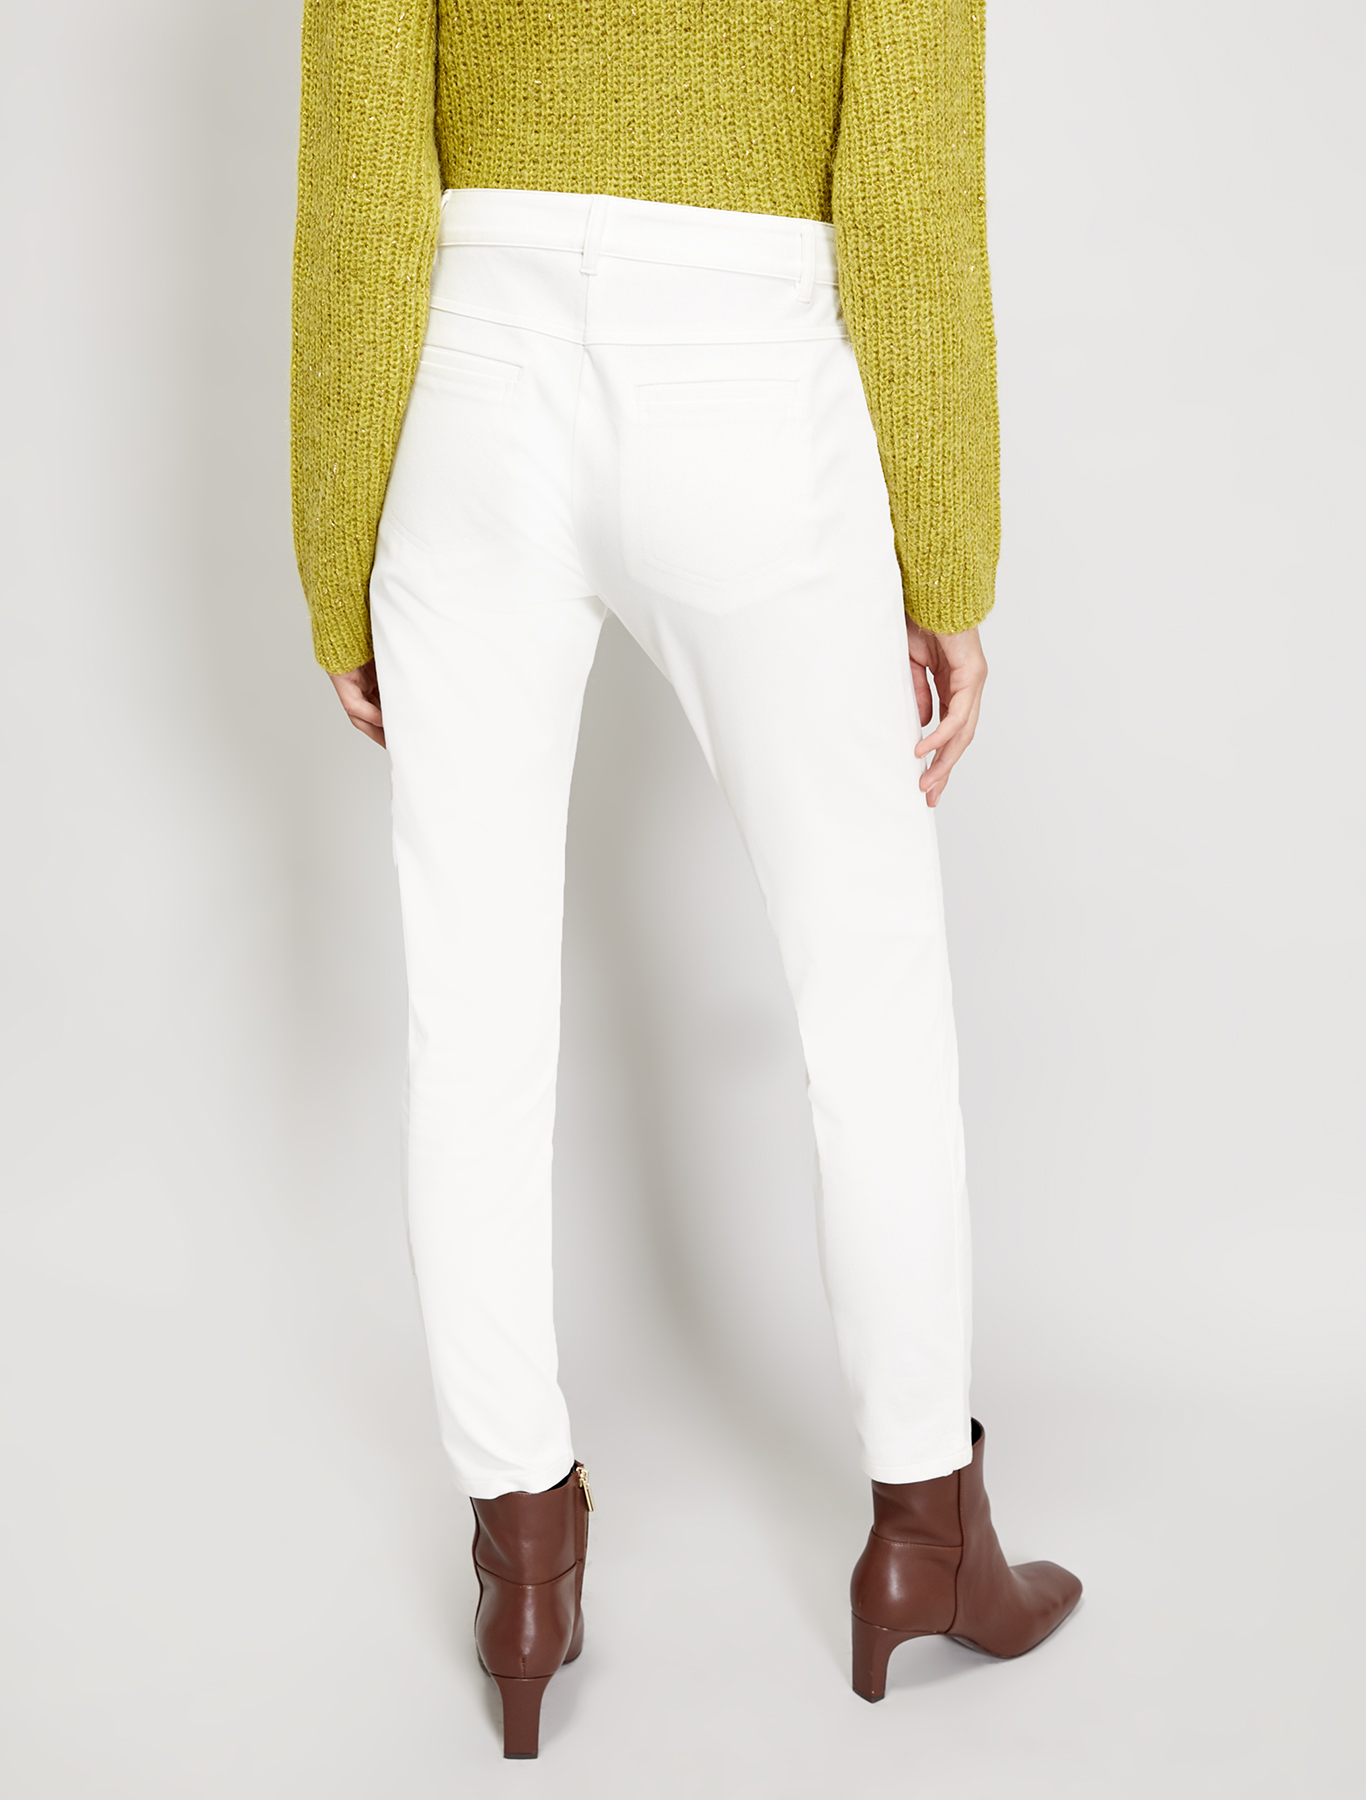 Skinny-fit twill trousers - white - pennyblack